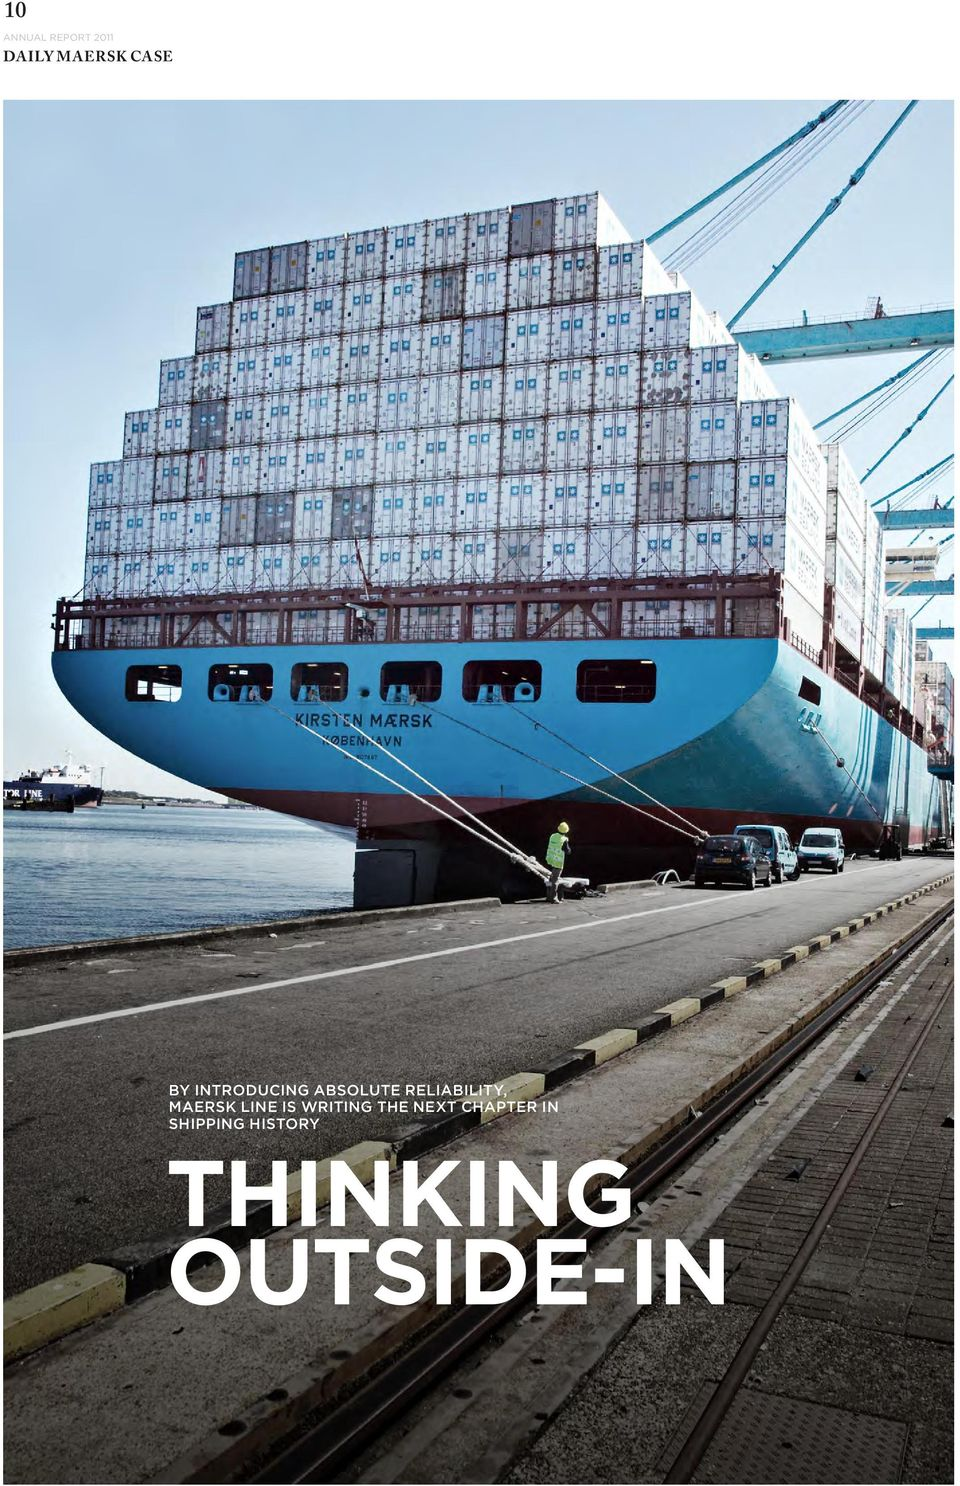 RELIABILITY, MAERSK LINE IS WRITING